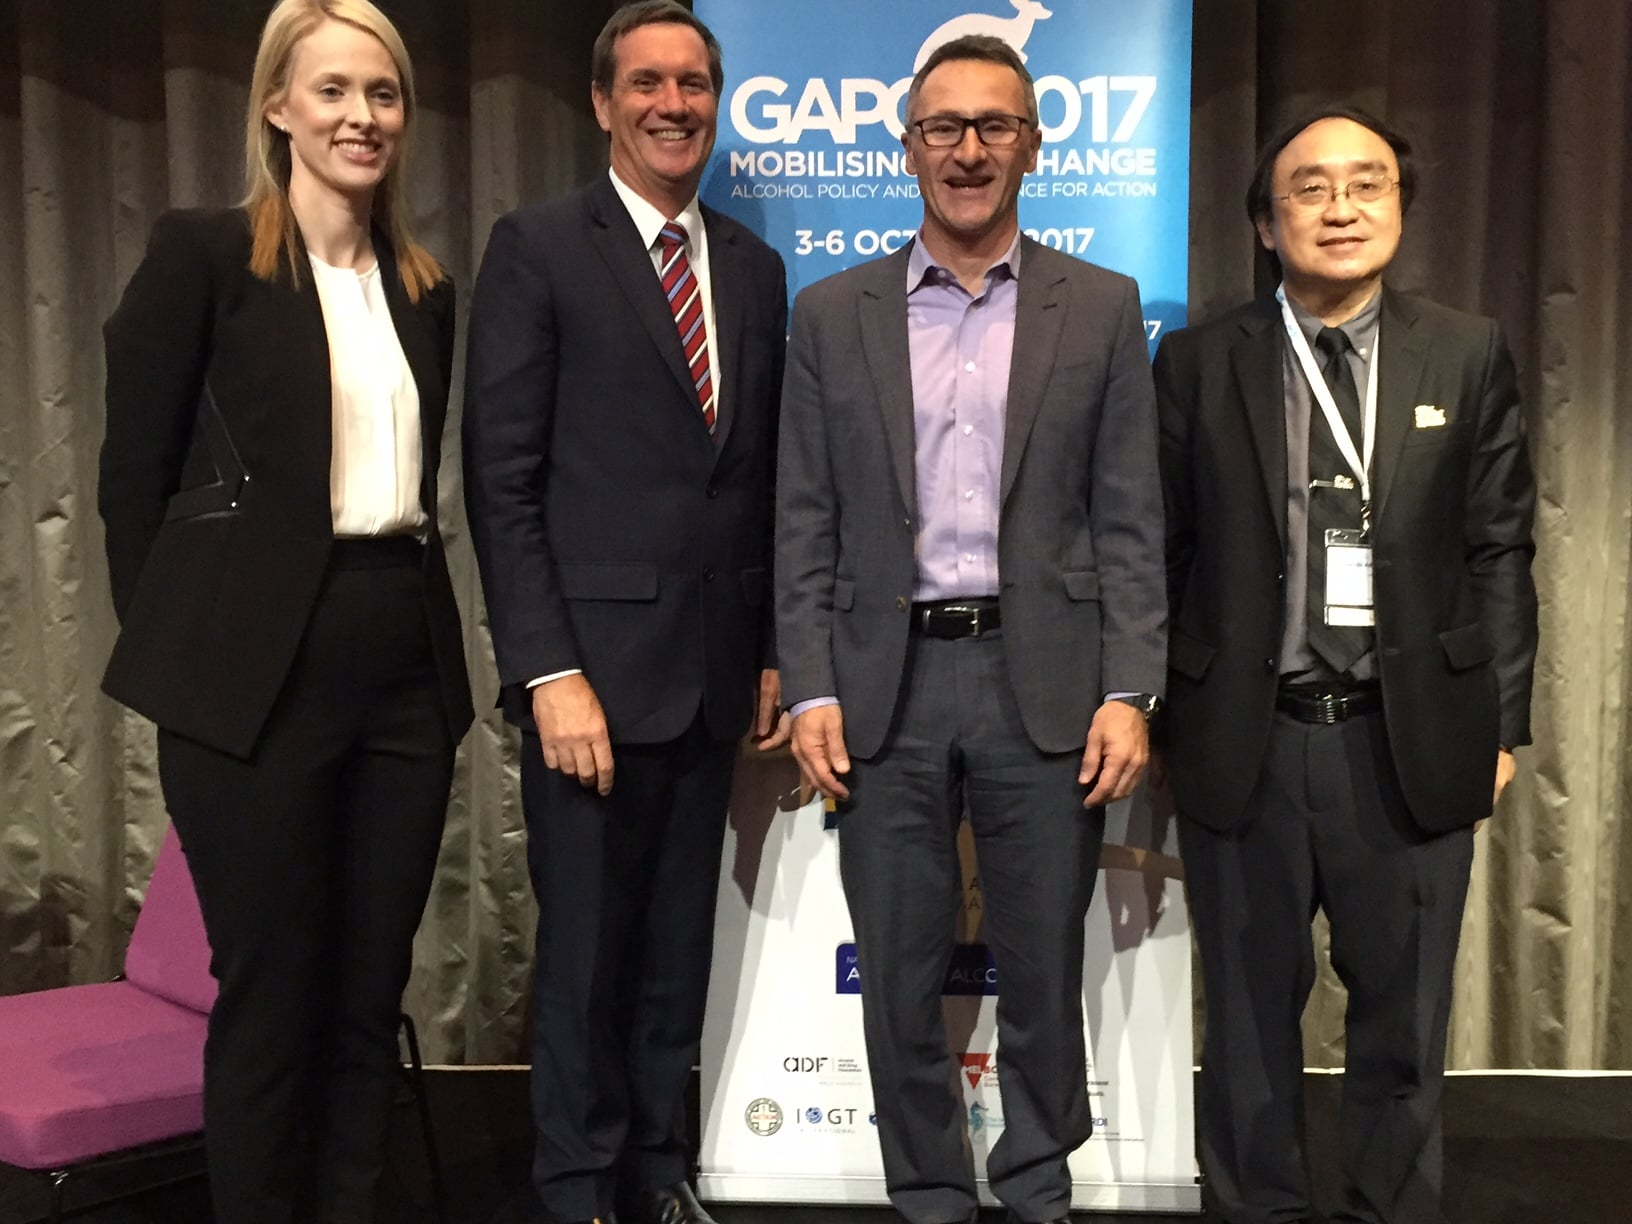 Calling last drinks for the alcohol industry - news from #GAPC2017